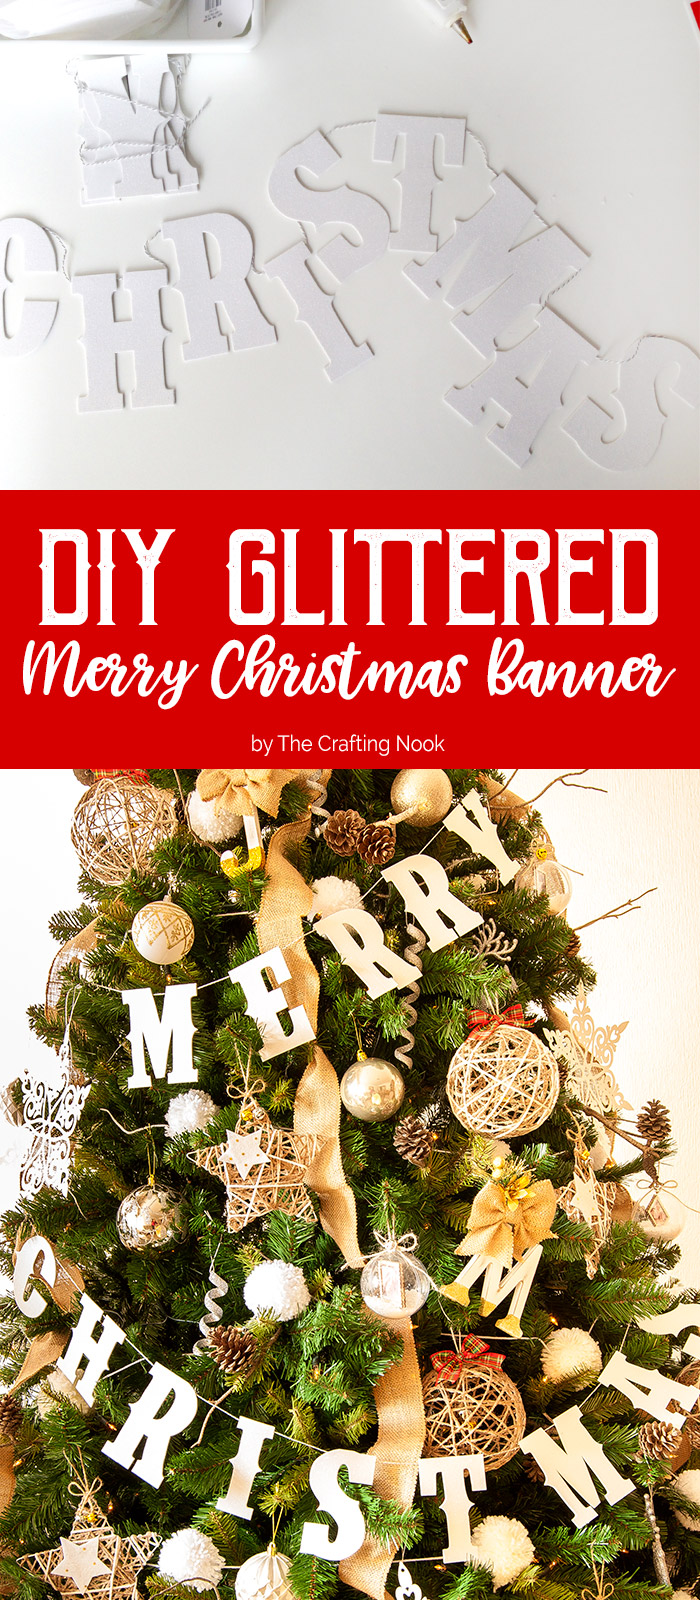 DIY Glittered Merry Christmas Banner